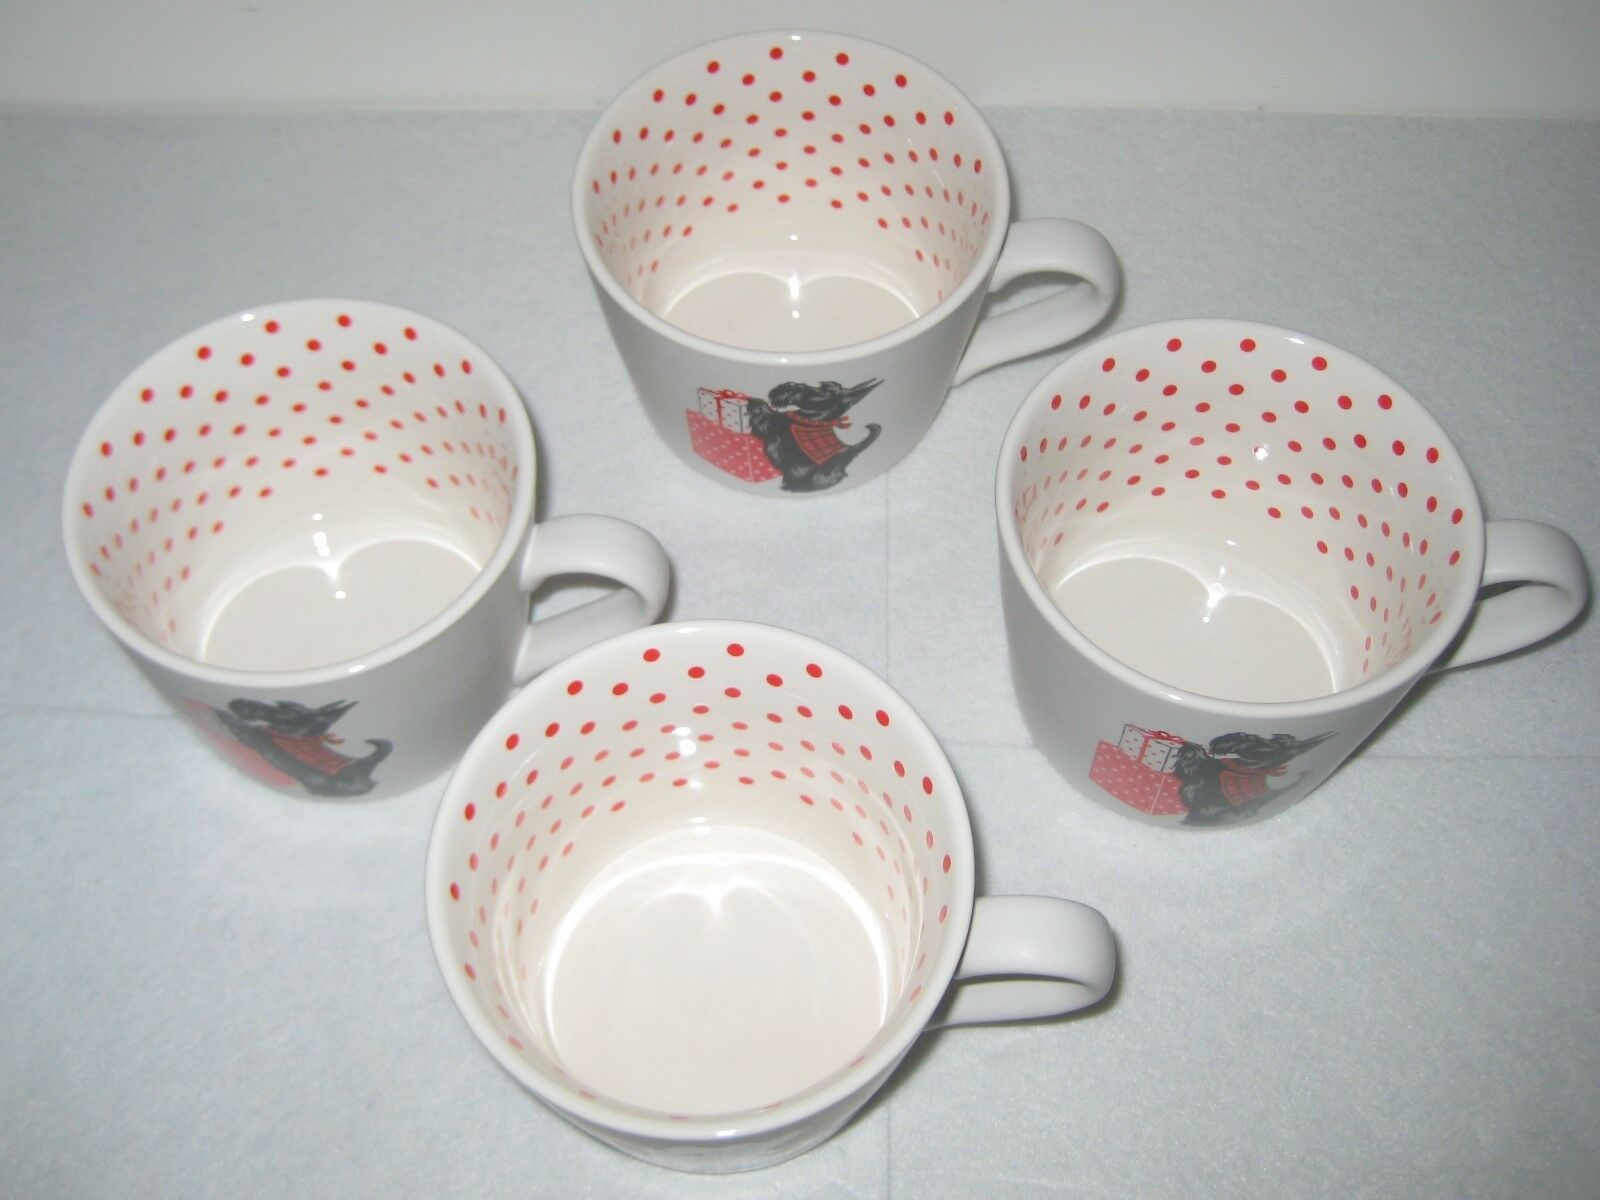 GRACE SCOTTIE DOG MERRY CHRISTMAS MUGS 12 12 12 OZ SET OF 4 New With Tags 4a7375